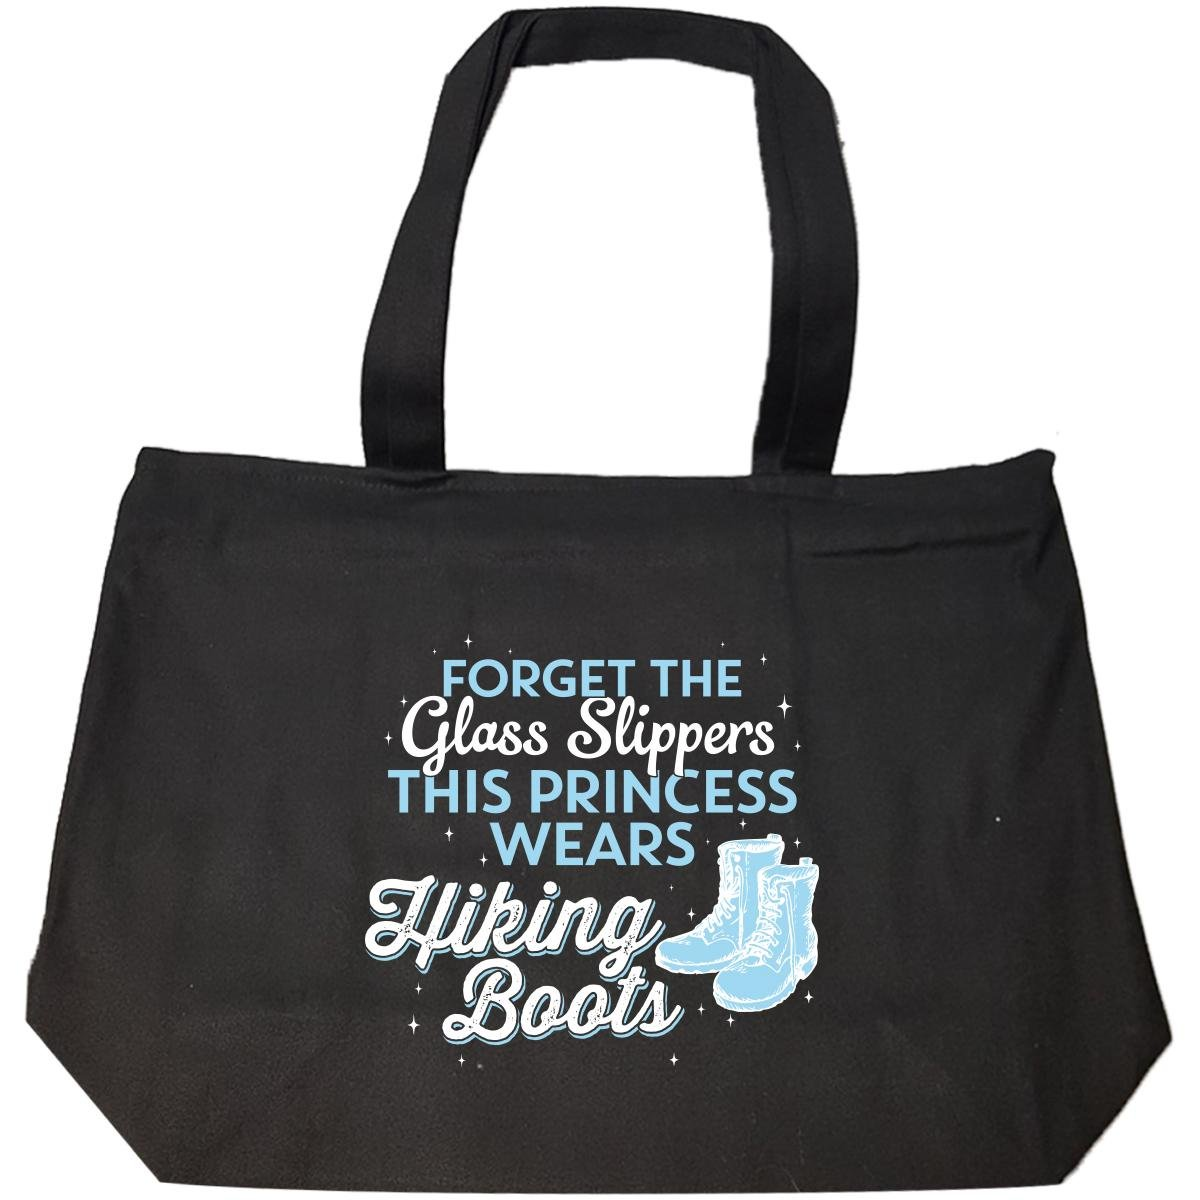 This Princess Wears Hiking Boots - Tote Bag With Zip